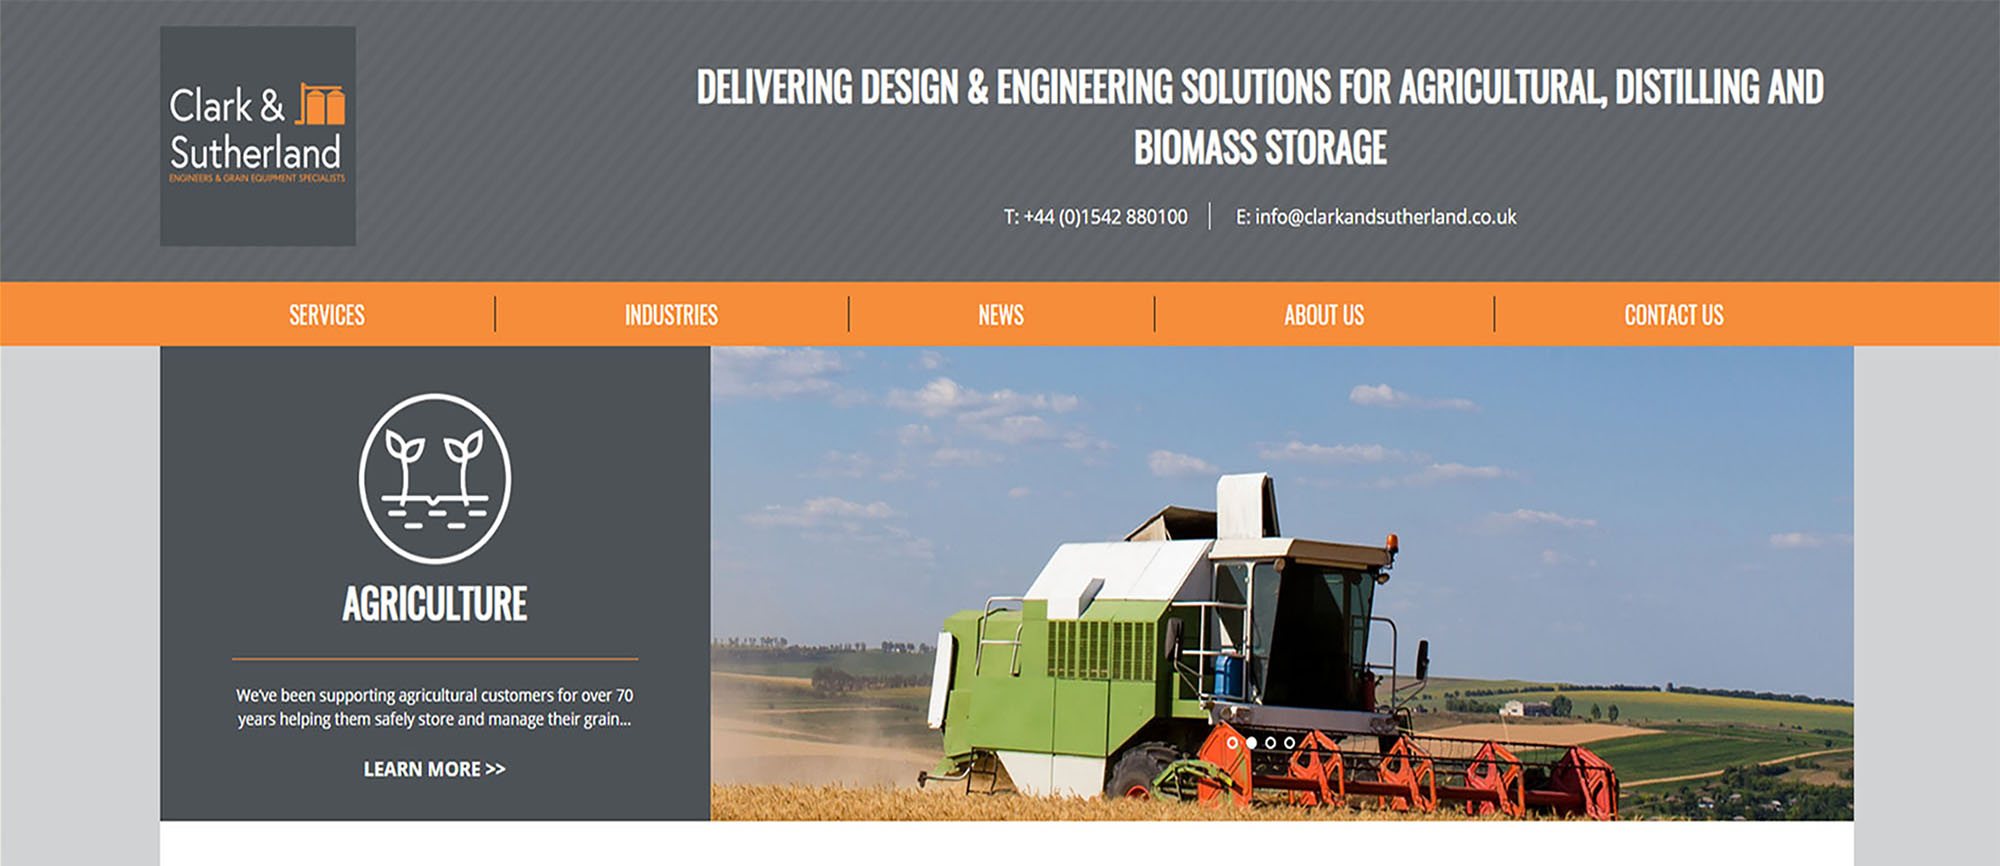 Screenshot of our new website featuring image of combine harvester